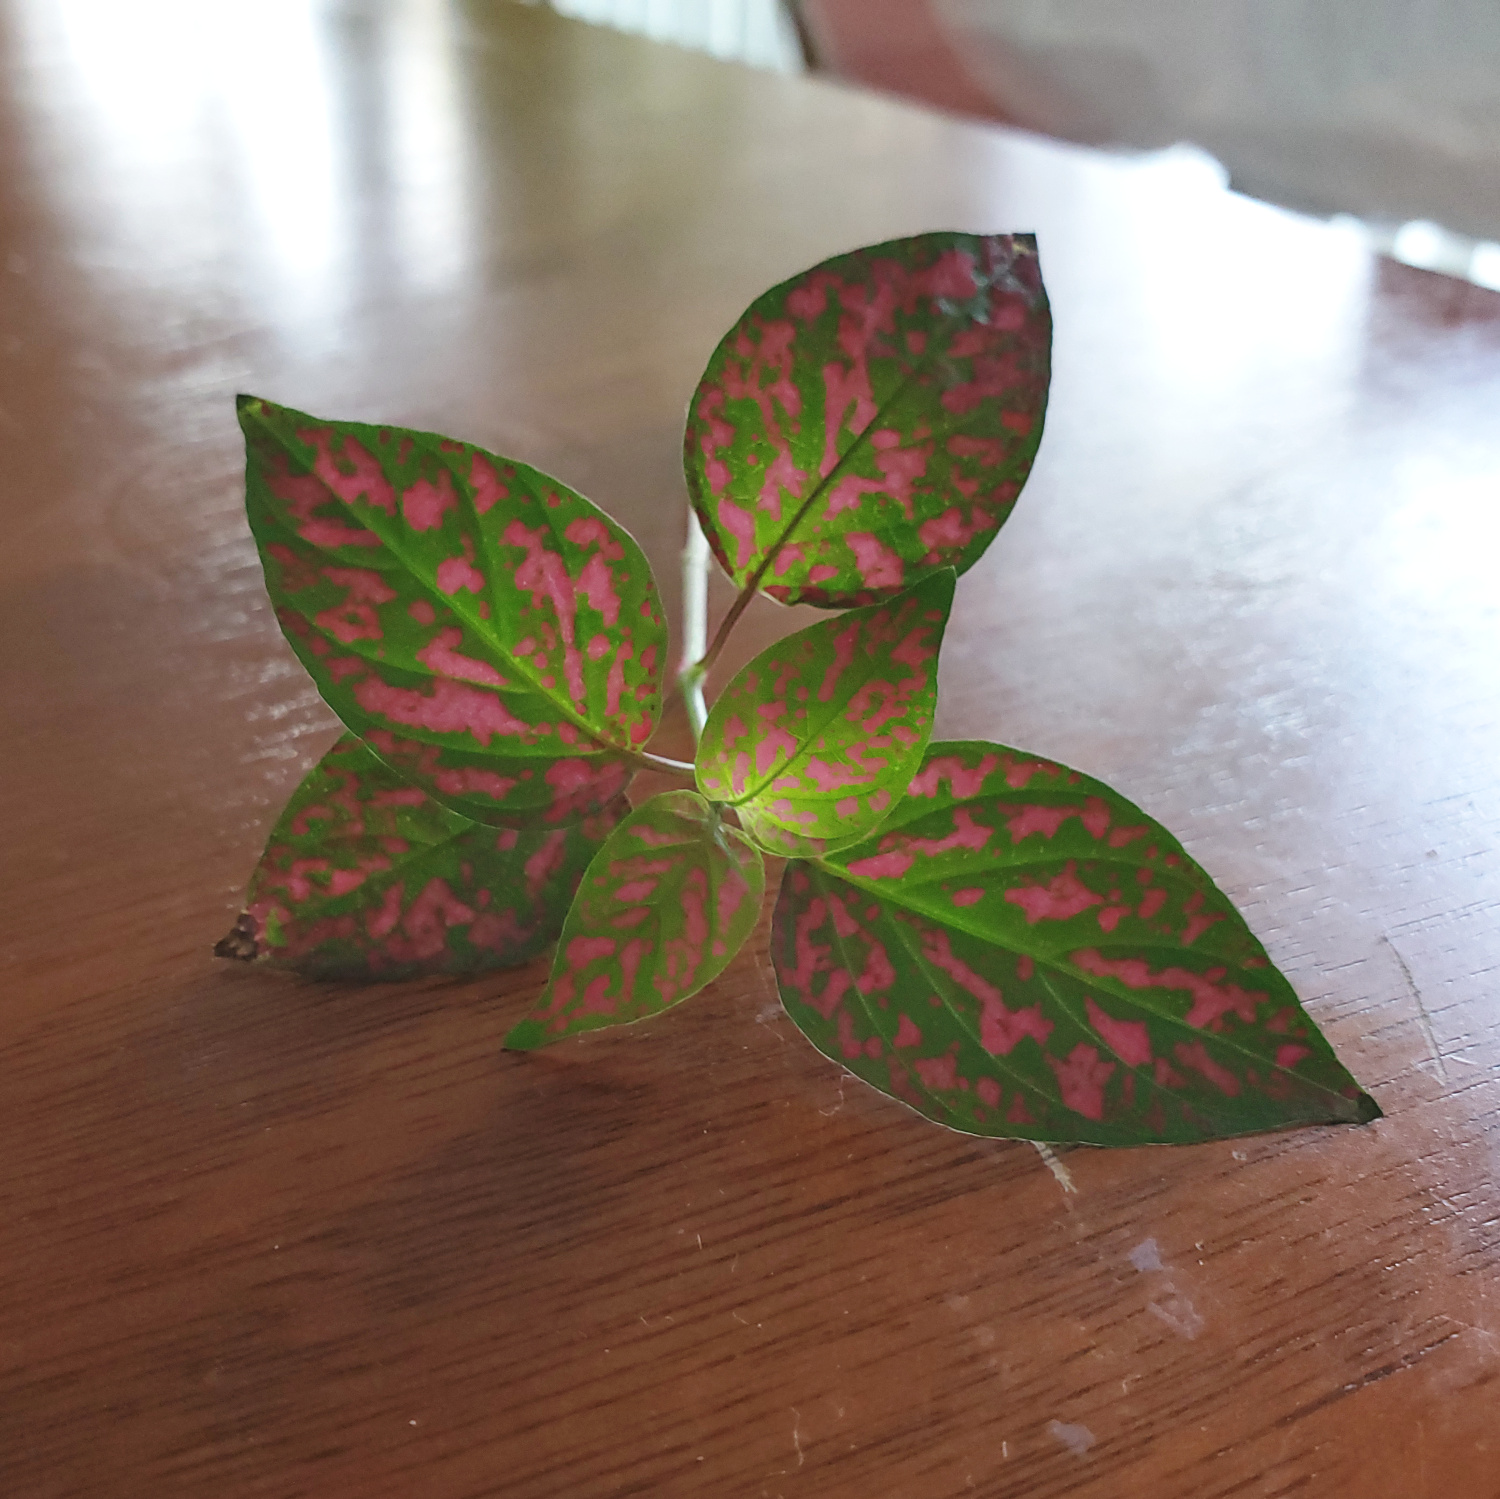 The polka dot leaves glow with light